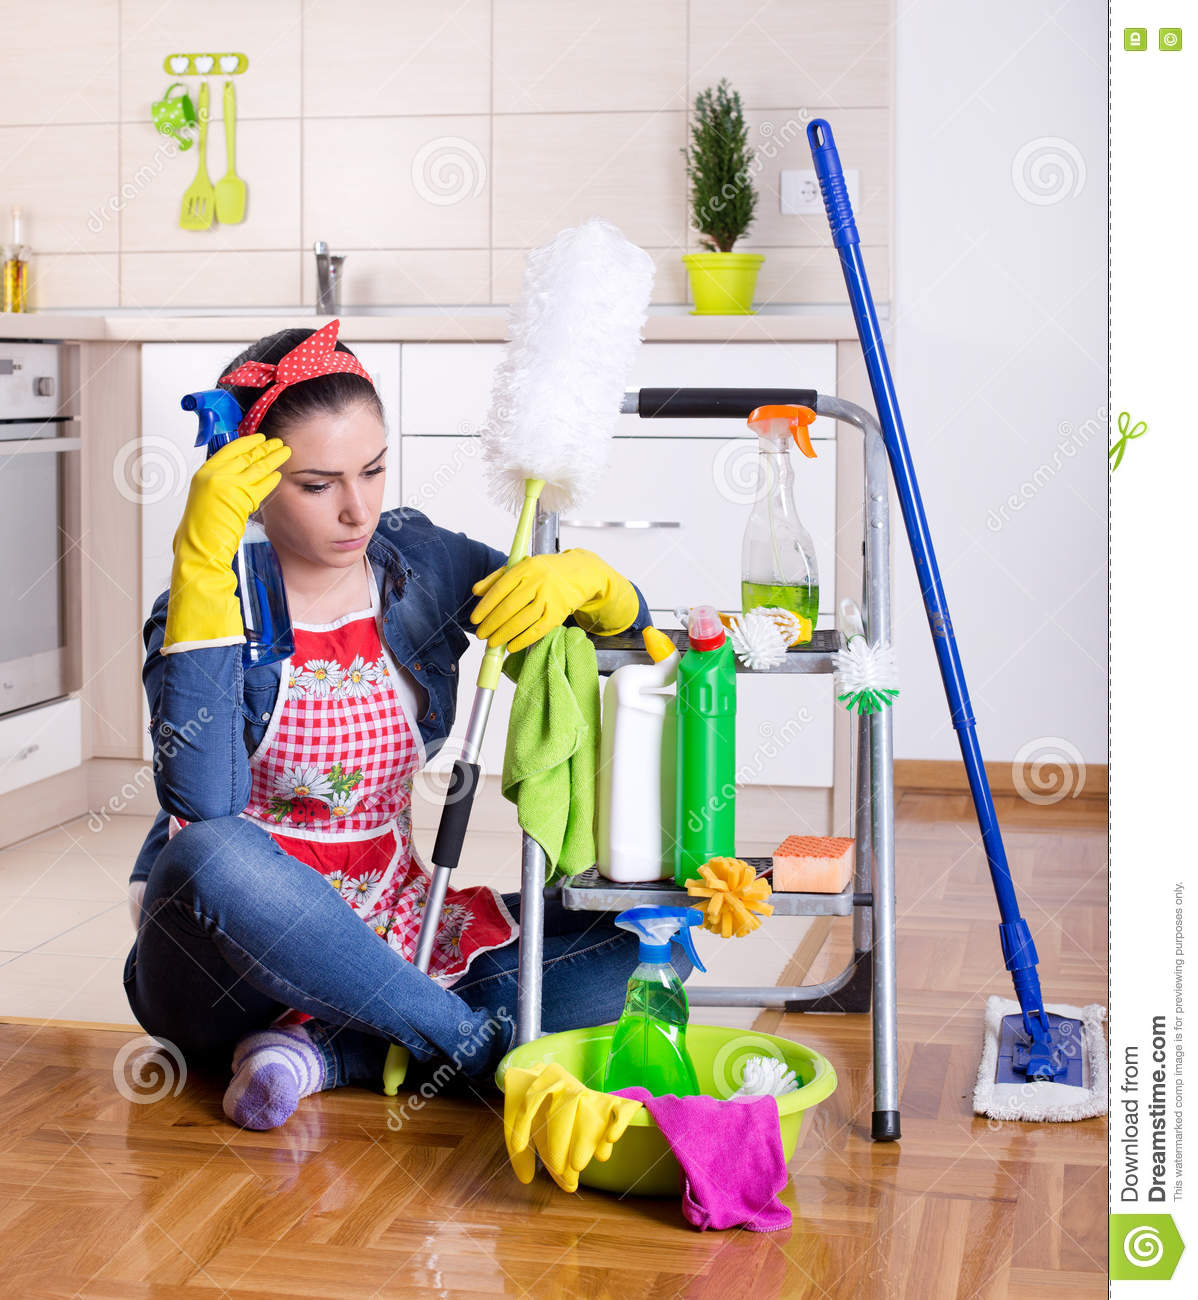 Unhappy Woman With Cleaning Supplies In The Kitchen Stock